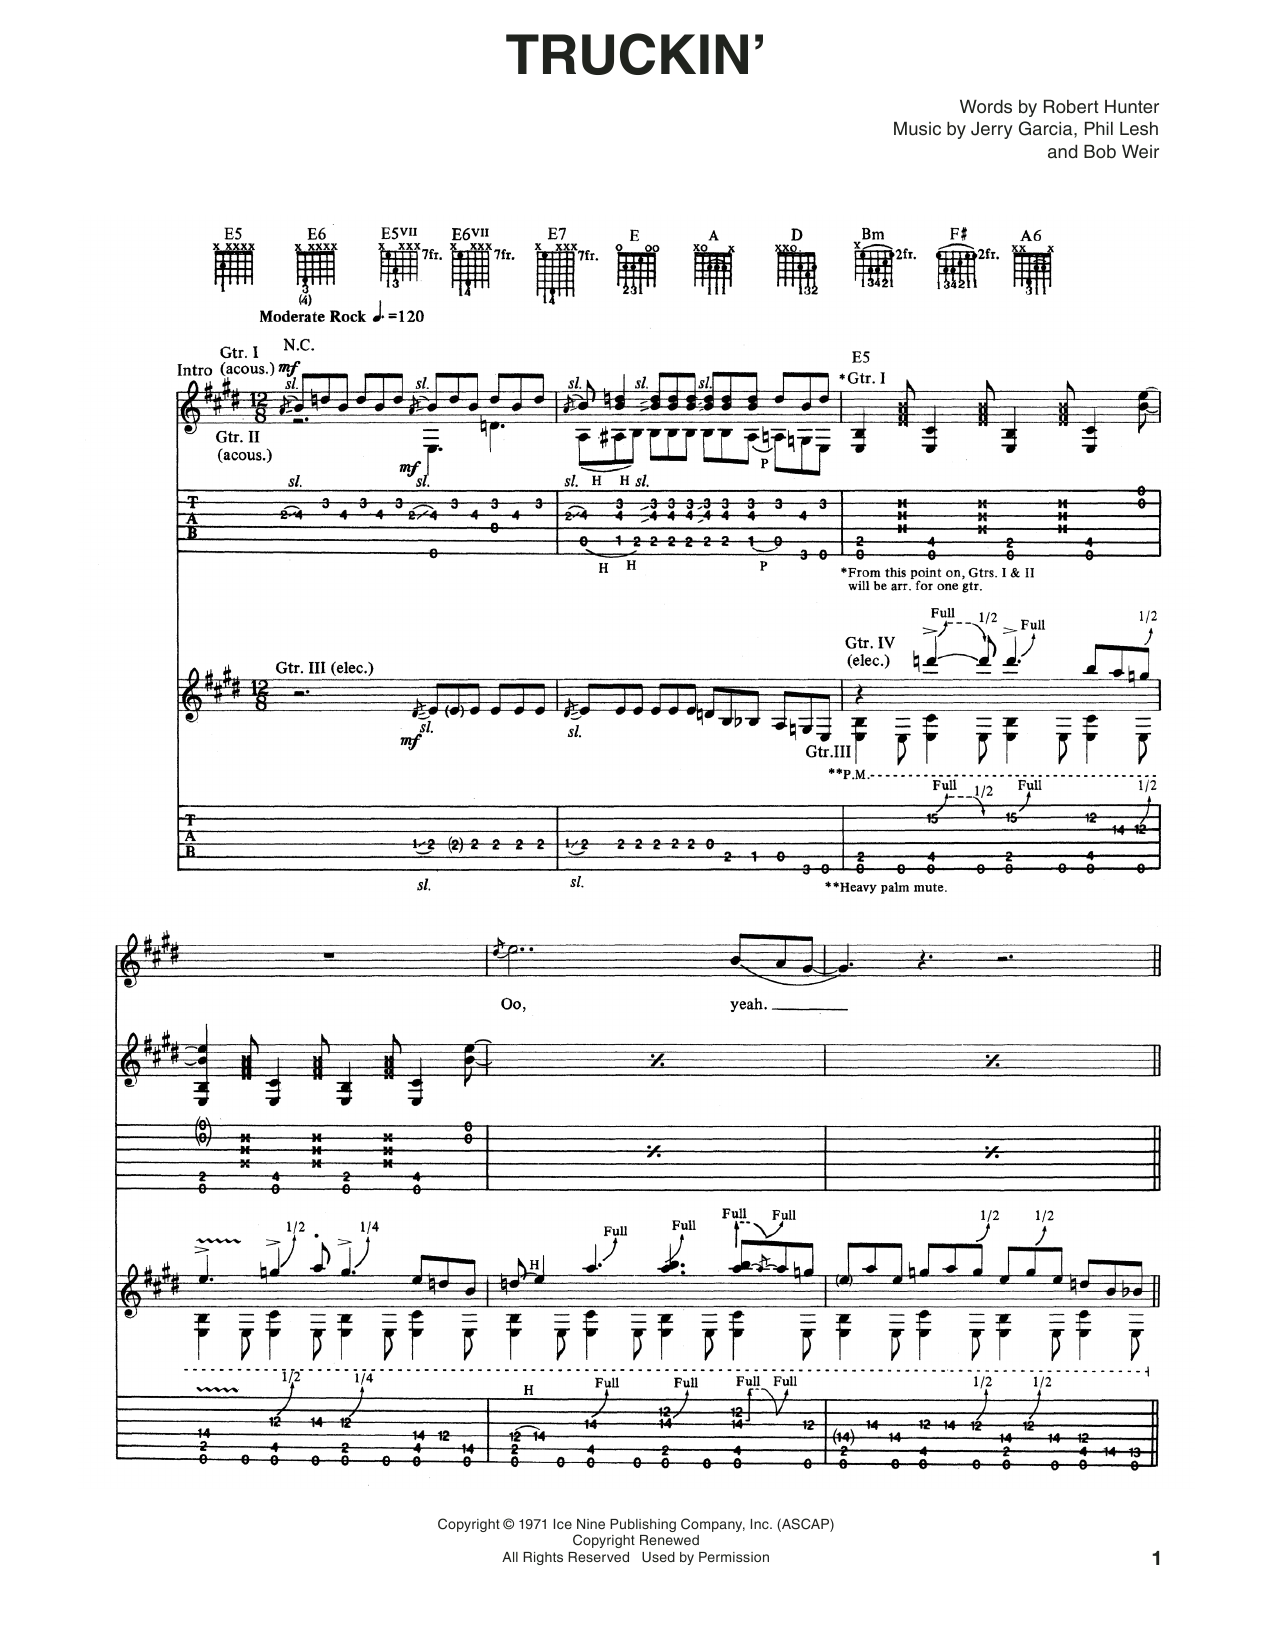 Grateful Dead Truckin' sheet music notes and chords. Download Printable PDF.